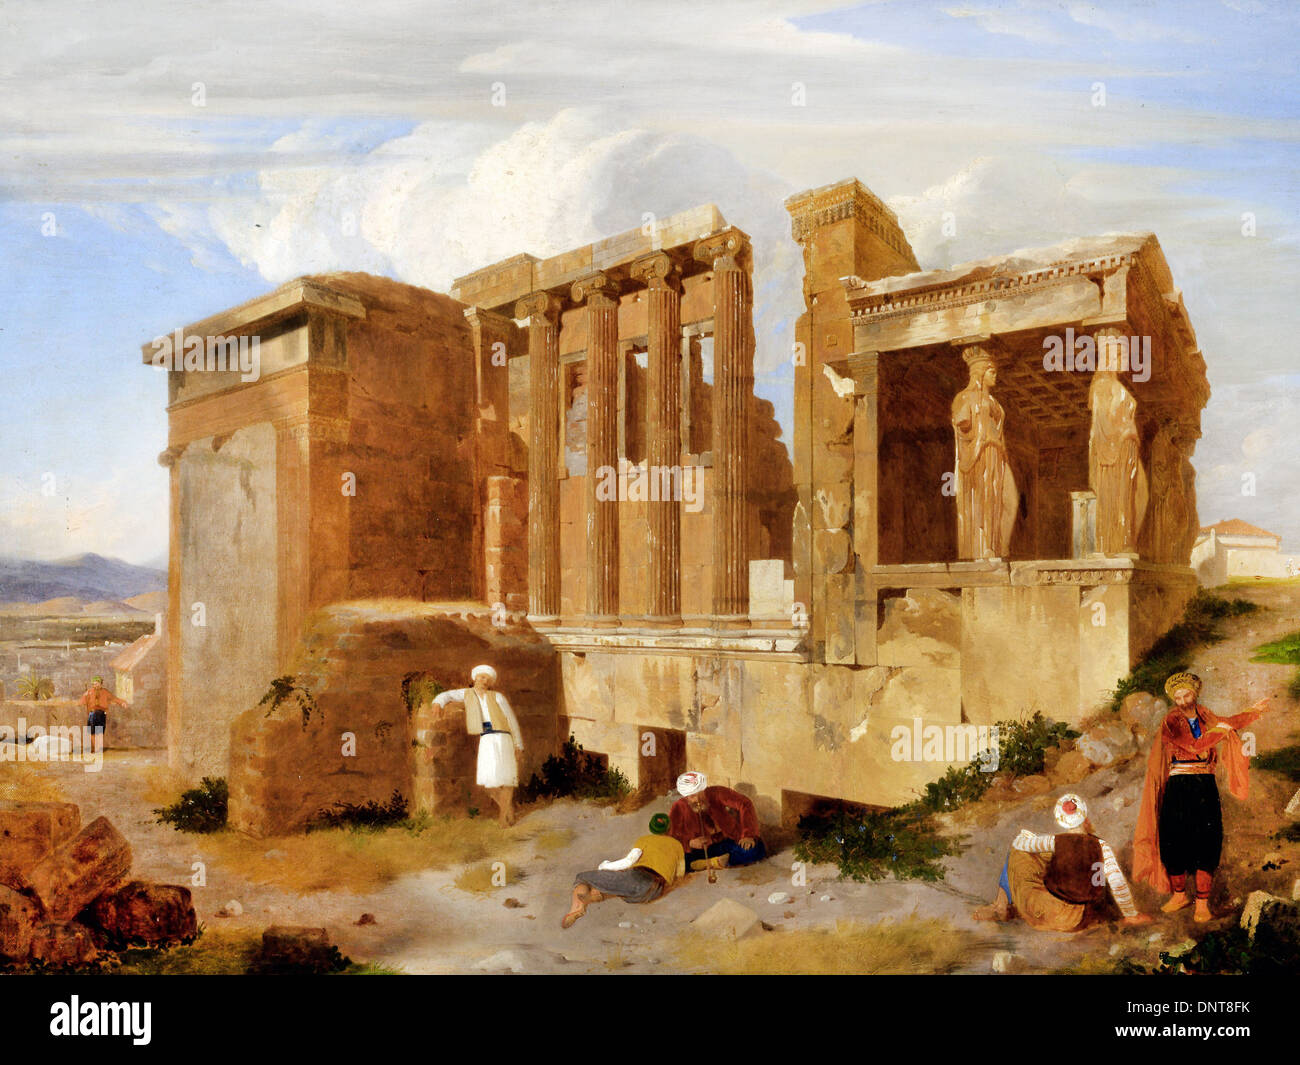 Charles Lock Eastlake, The Erechtheum, Athens, with Figures in the Foreground 1821 Oil on canvas. Yale Center for British Art - Stock Image